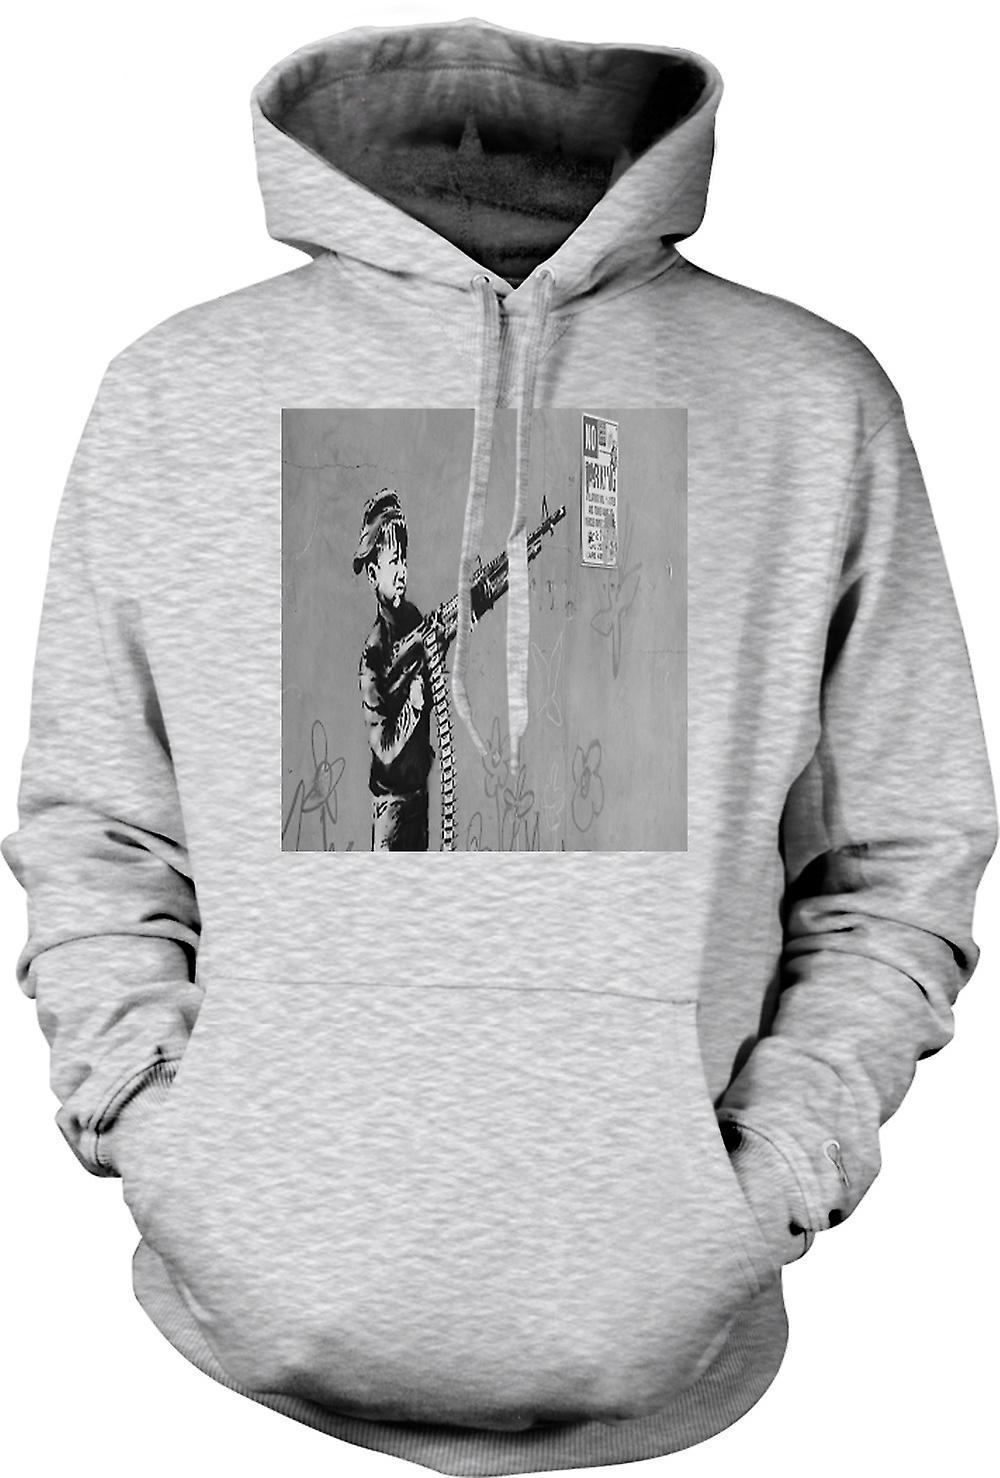 Mens Hoodie - Banksy Kid avec M60 Machien Gun Wall Design